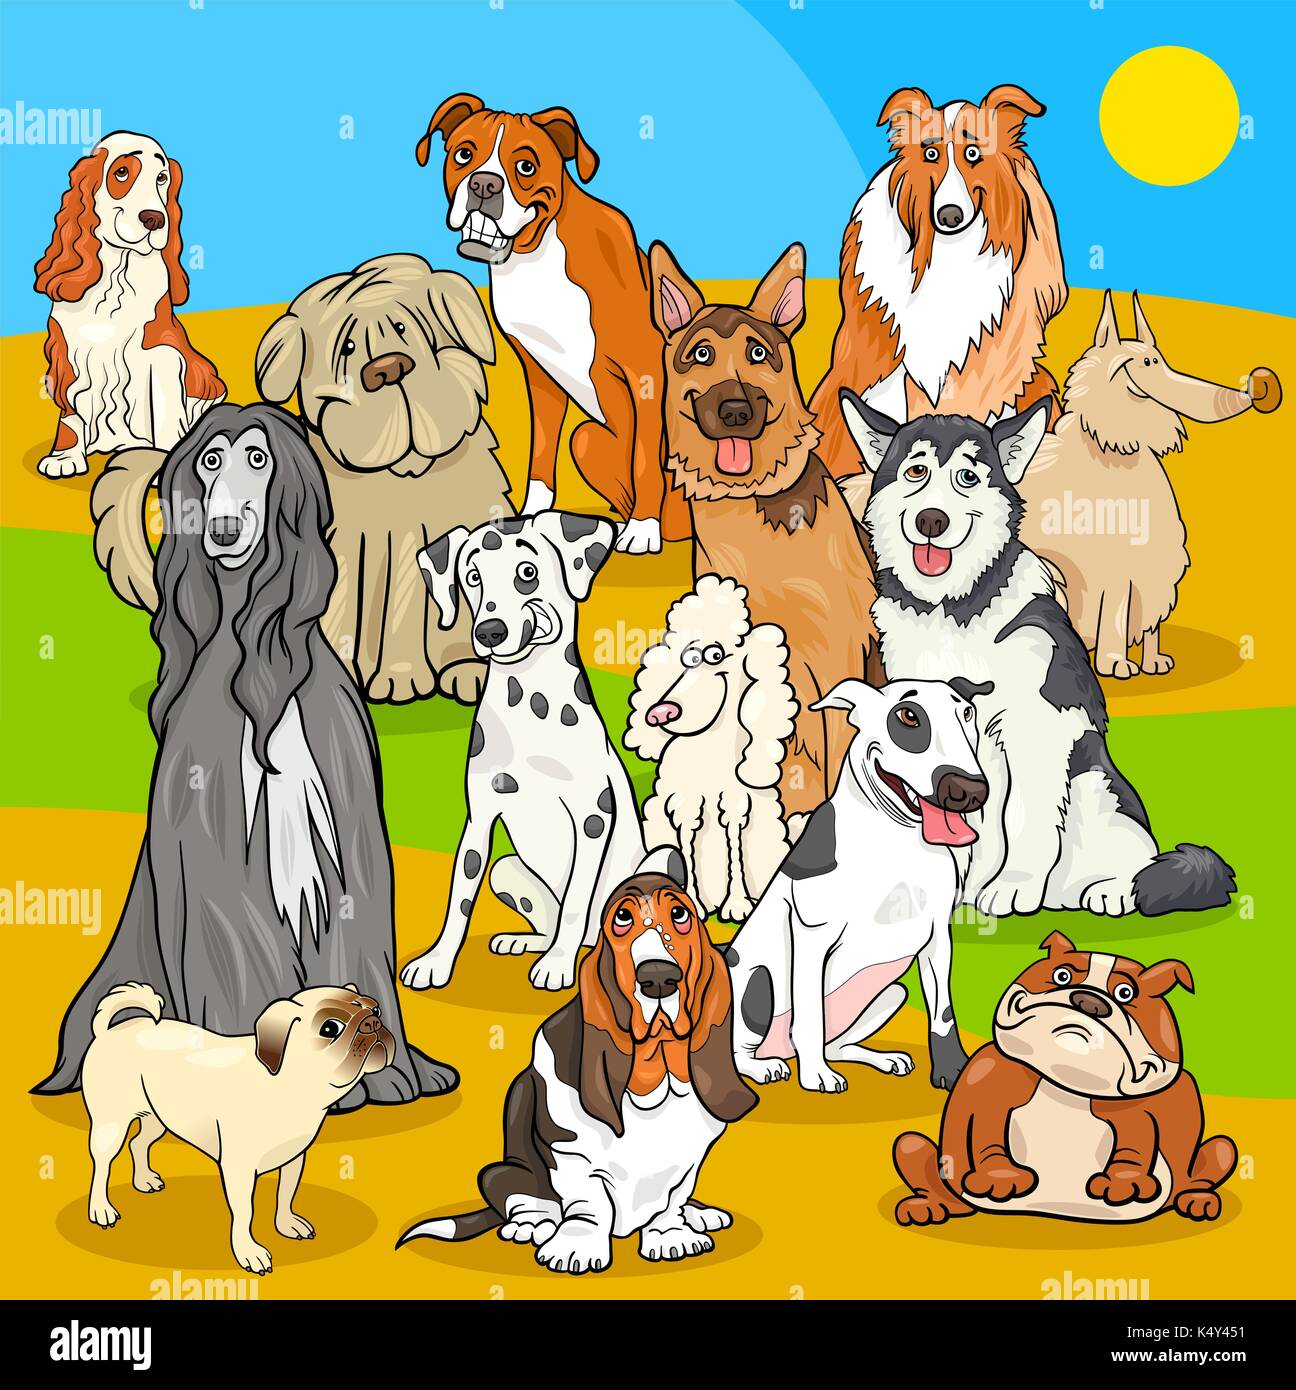 Cartoon Illustration of Pedigree Dogs Animal Characters Group - Stock Vector